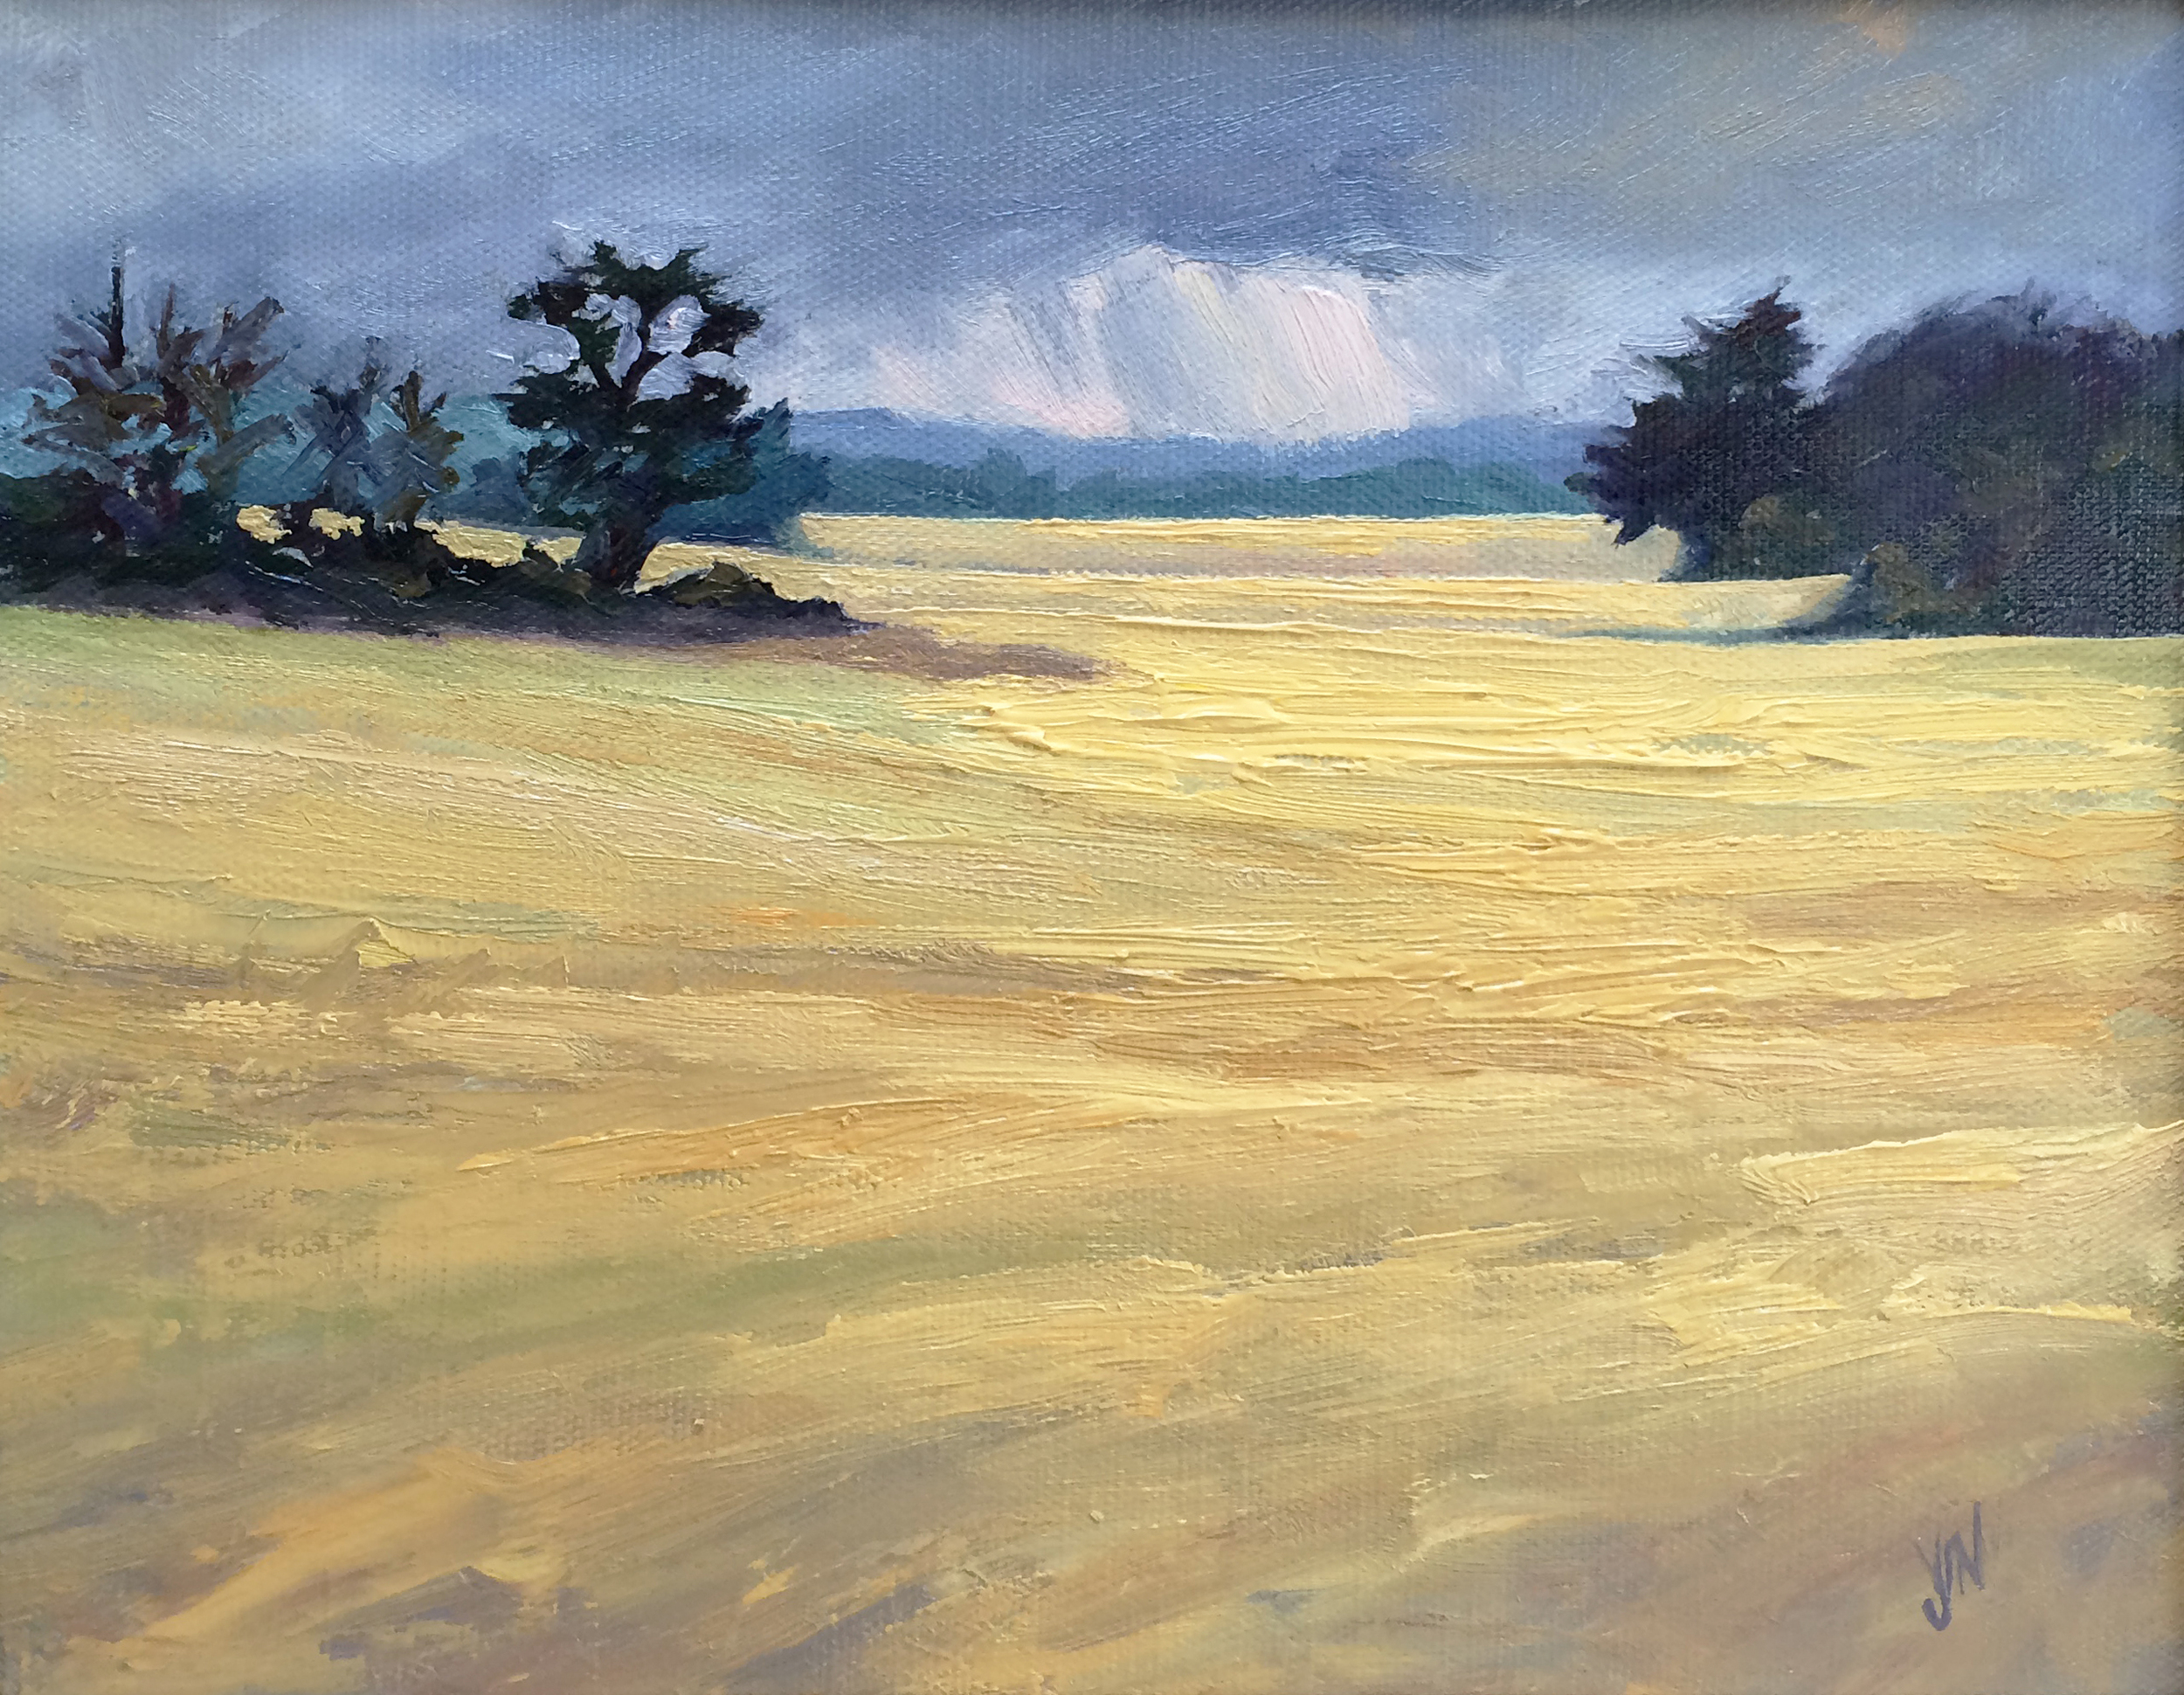 Liquid Gold...with another of those rain showers on the way, I got completely drowned painting this one!